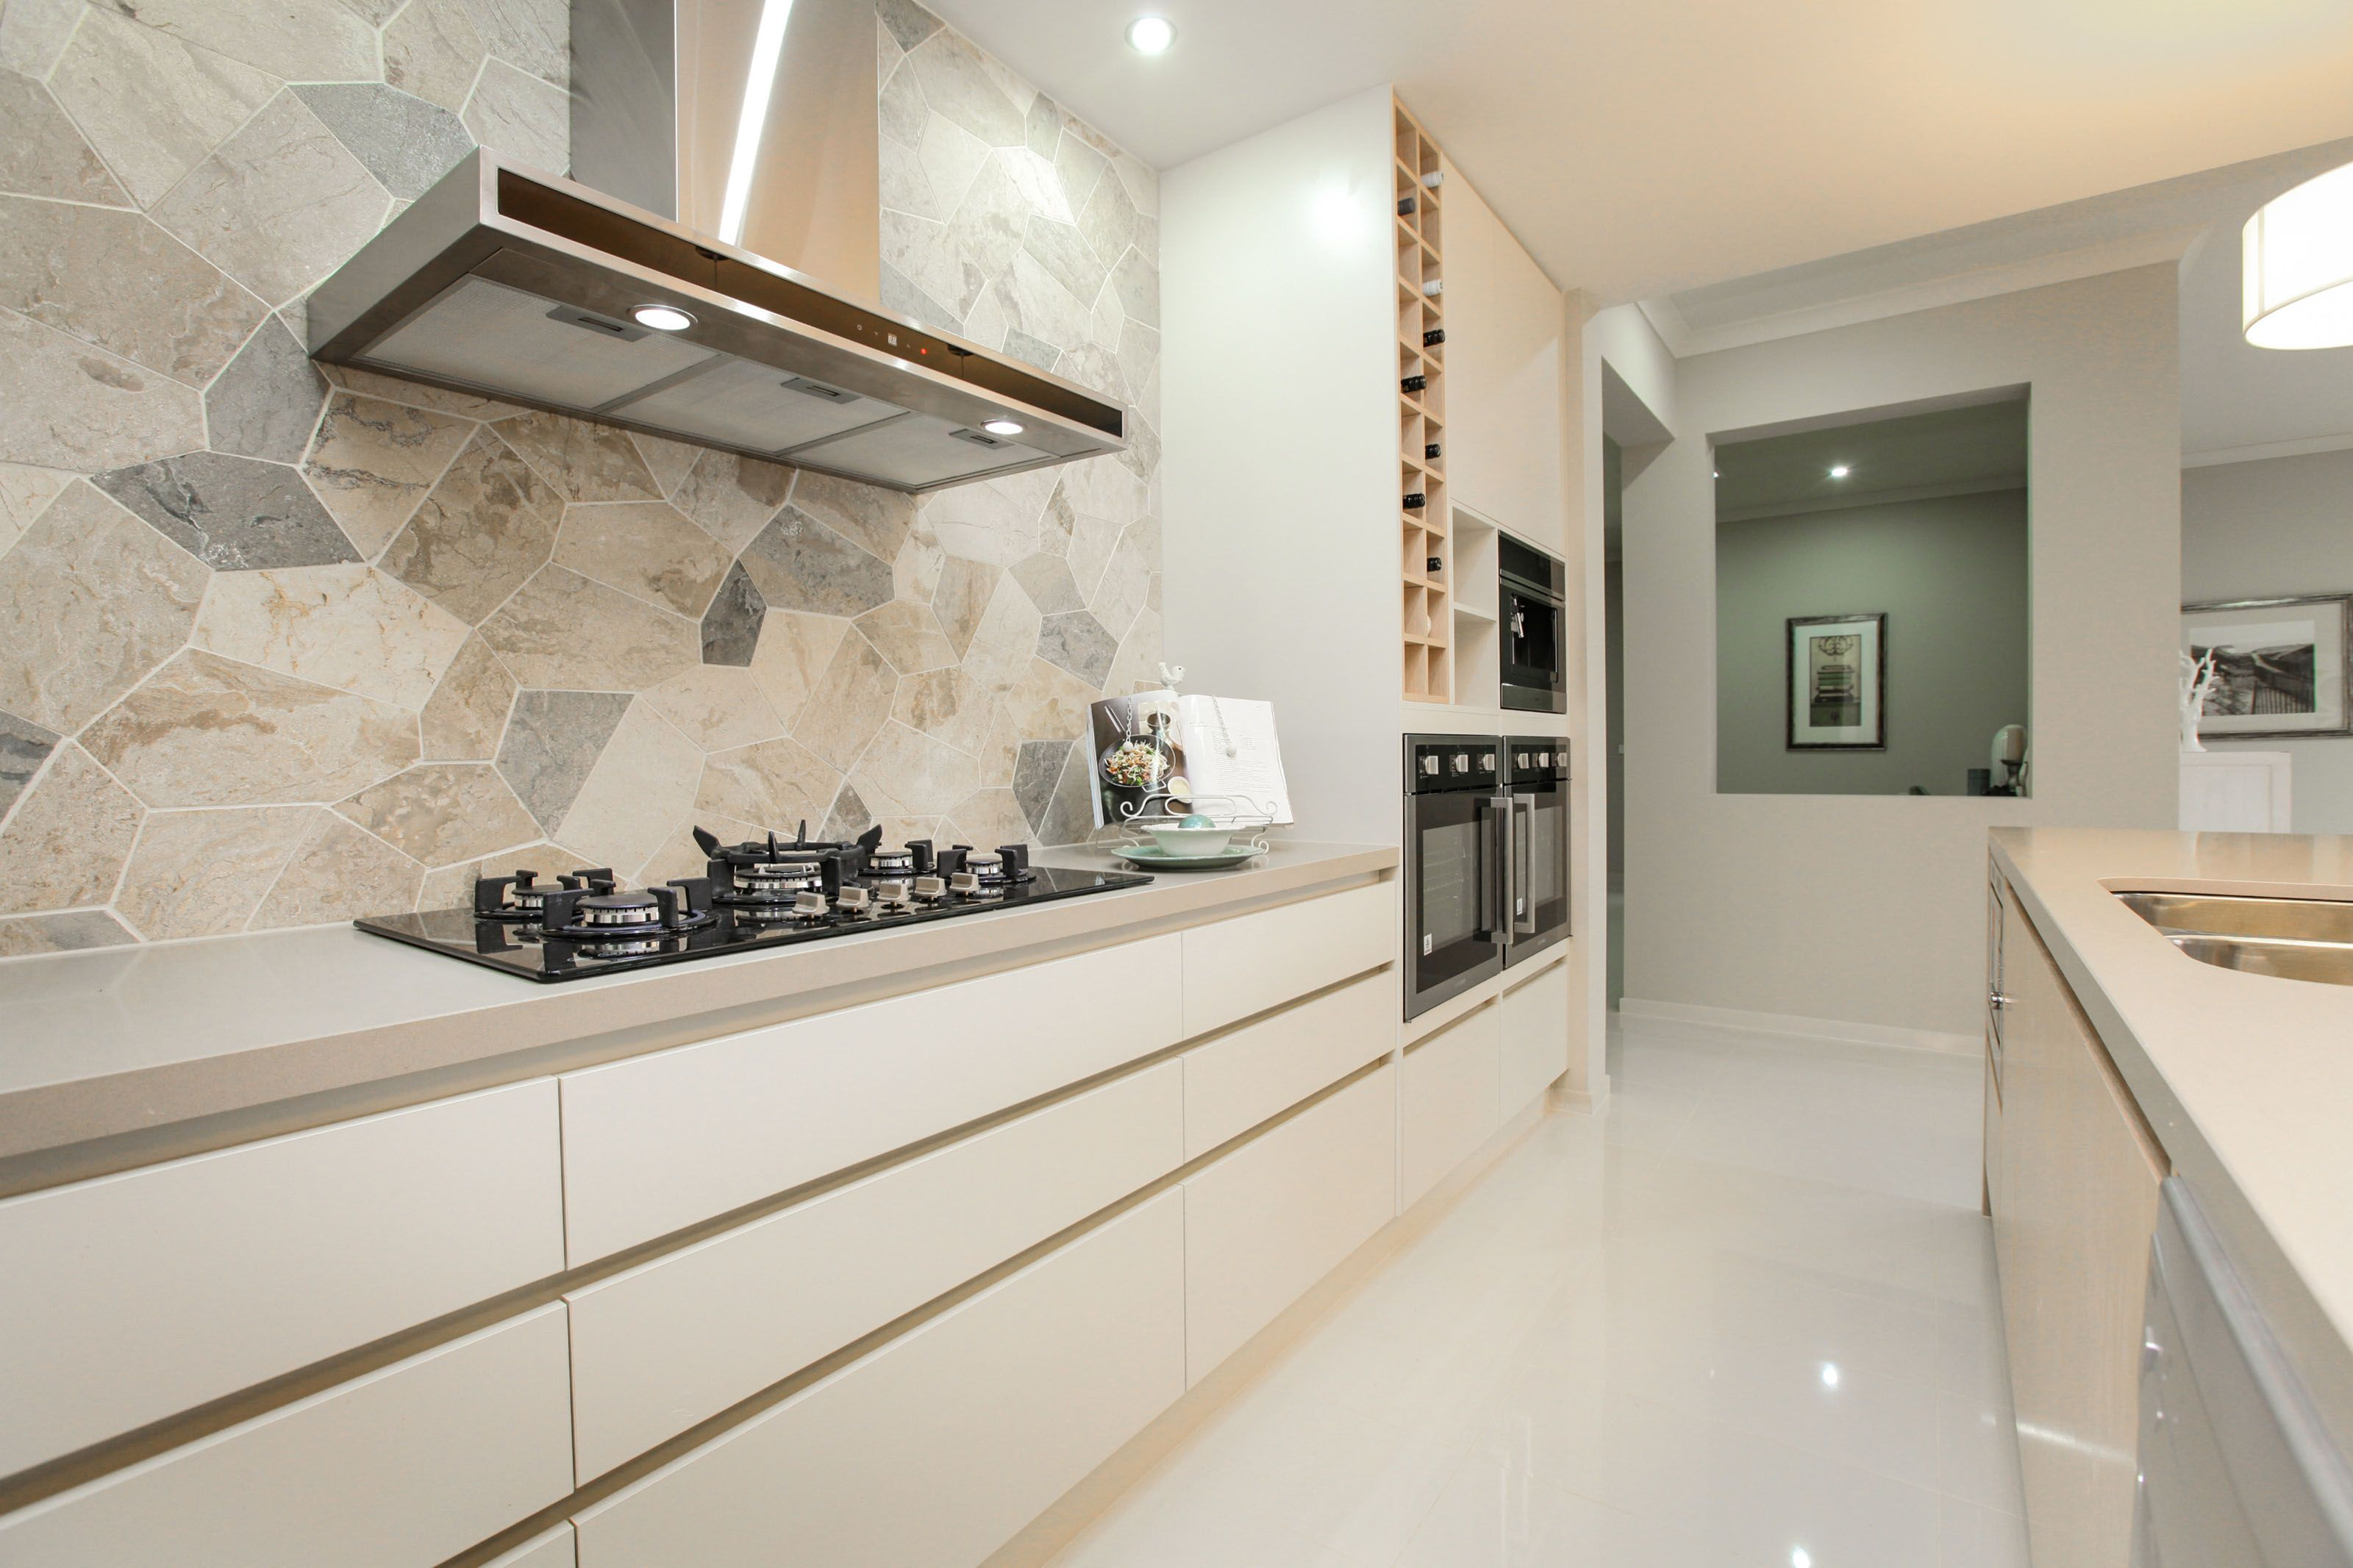 modern kitchen fitted with technica appliances kitchen